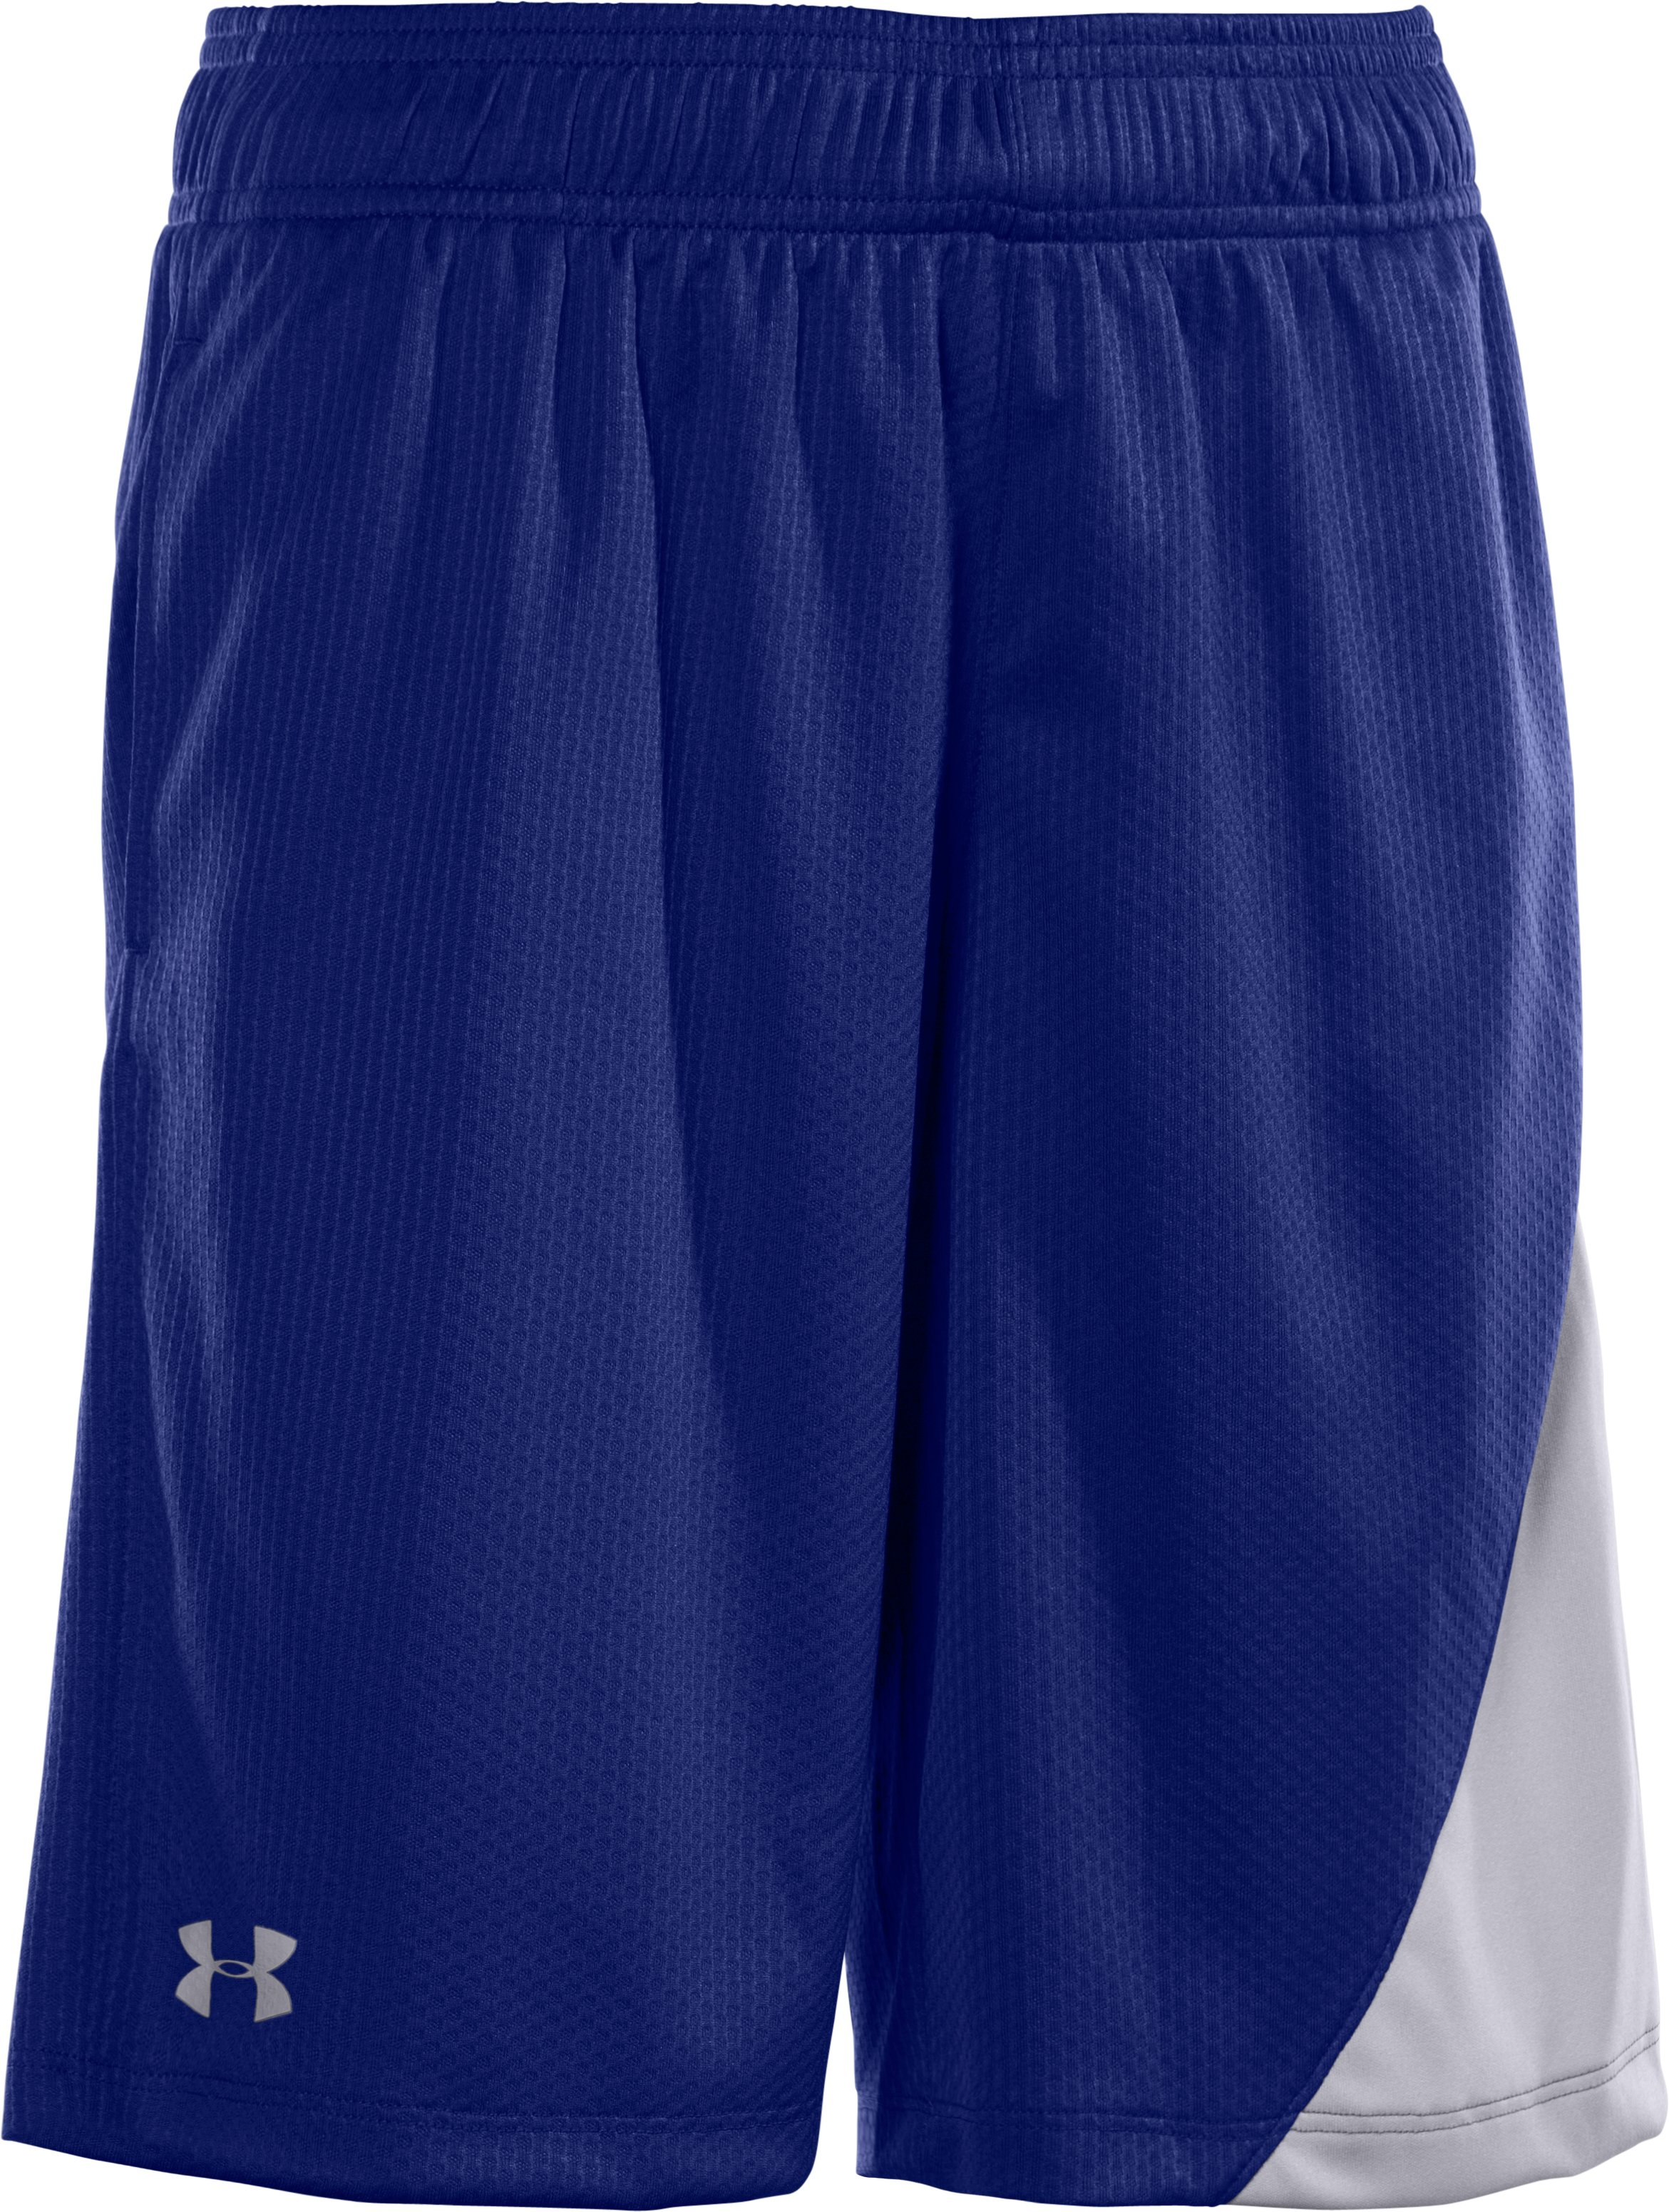 Boys' UA Influencer Training Shorts, Royal